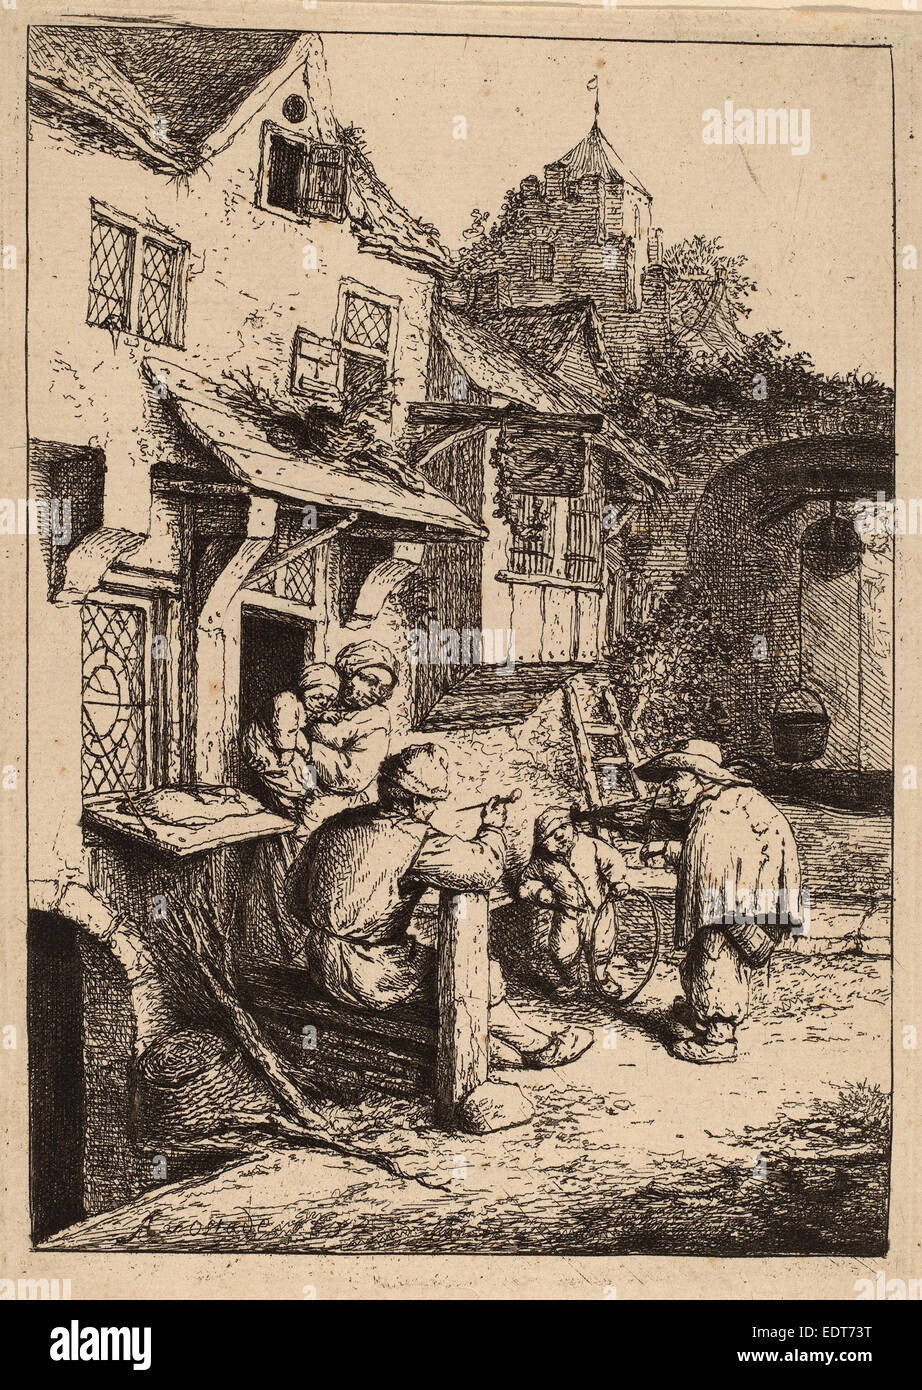 Adriaen van Ostade (Dutch, 1610 - 1685), Hunchbacked Fiddler, 1654, etching - Stock Image